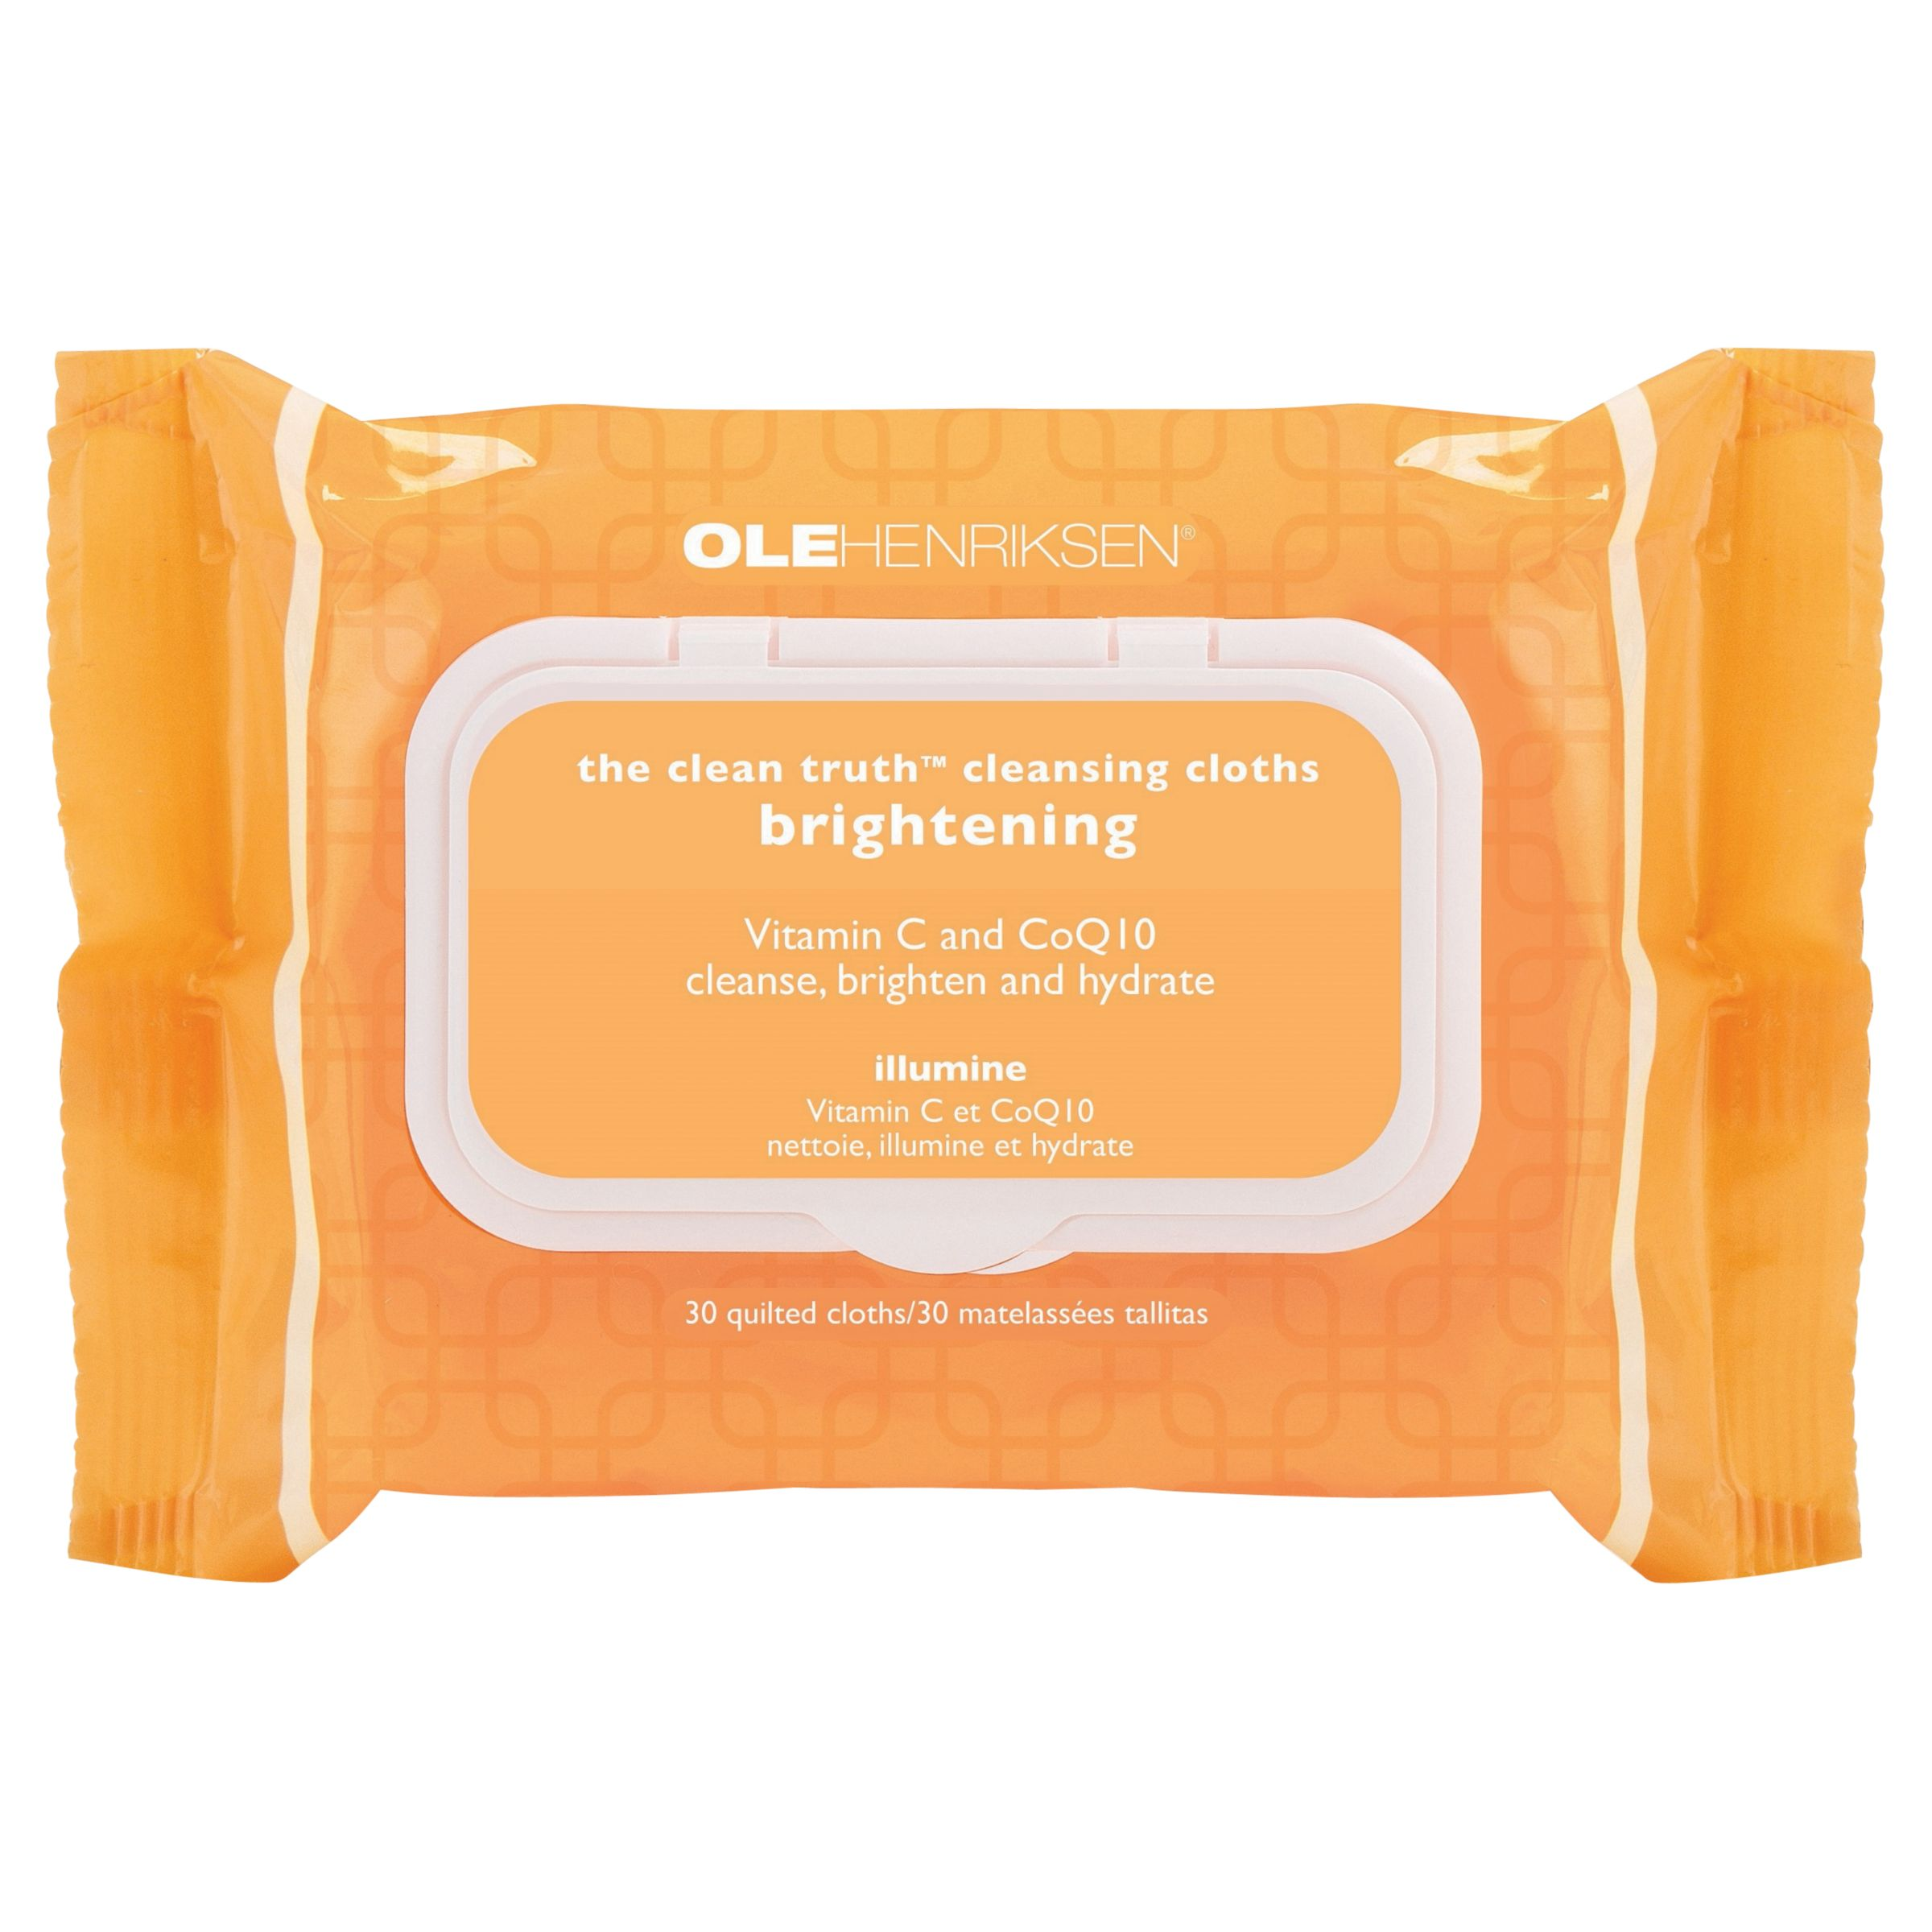 OLEHENRIKSEN OLEHENRIKSEN The Clean Truth Cleansing Cloths, Pack of 30